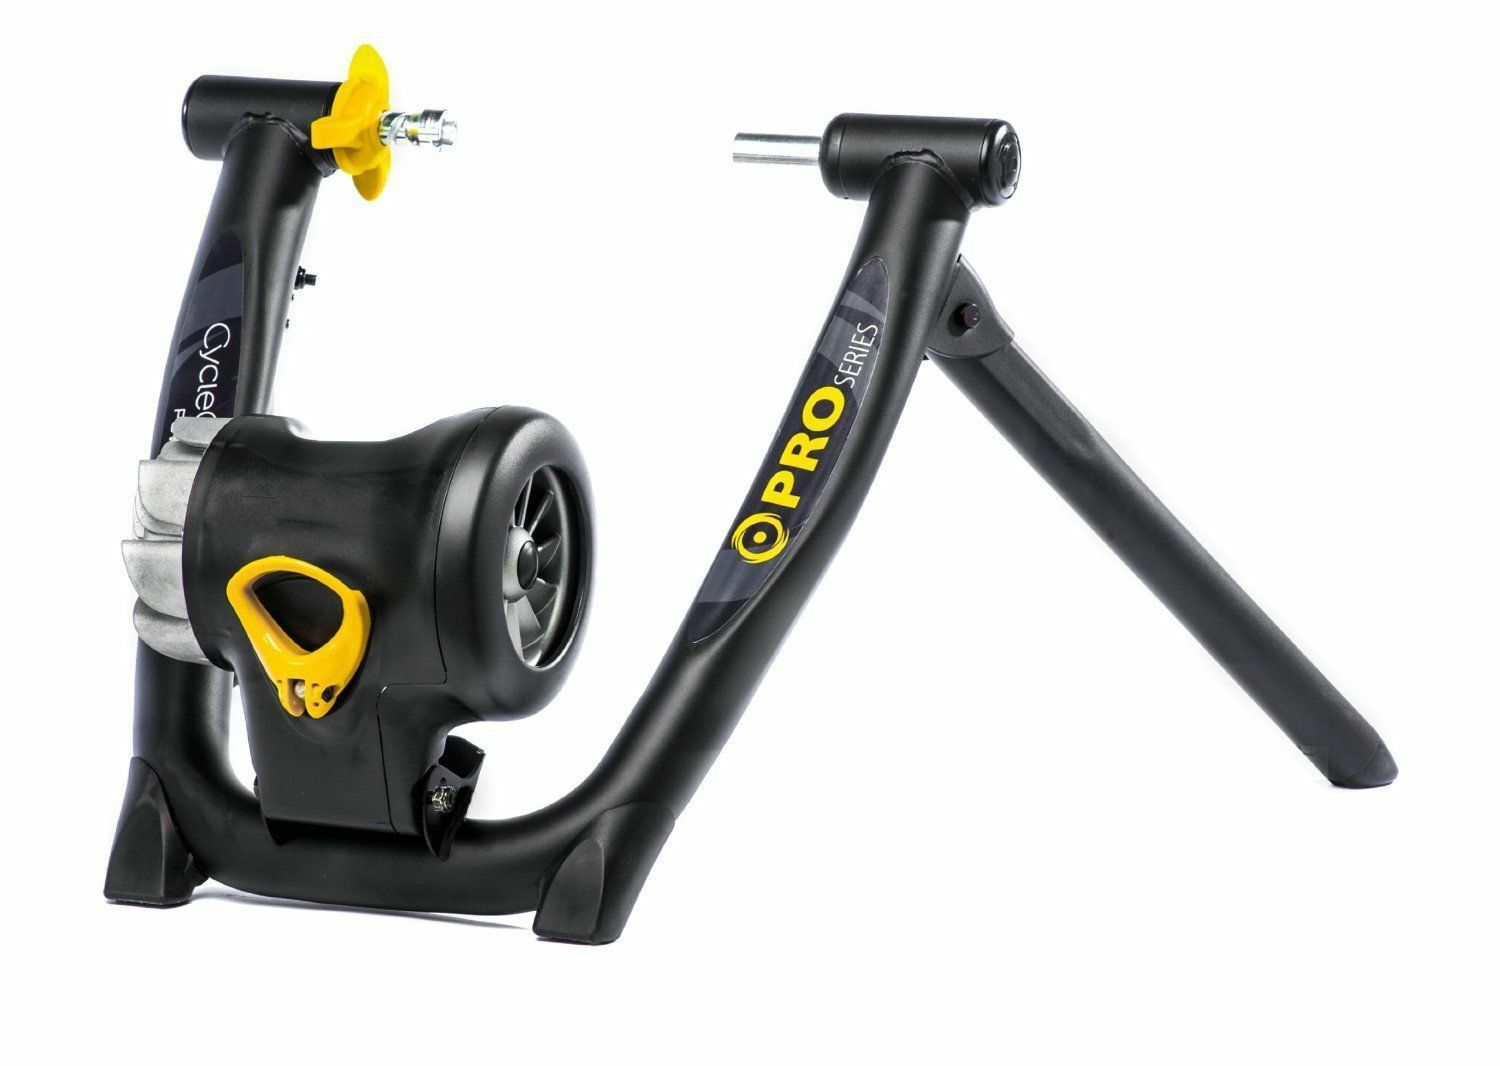 Cycleops Jetfluid Pro Bicycle Resistance Indoor Trainer Exercise Bike 9331